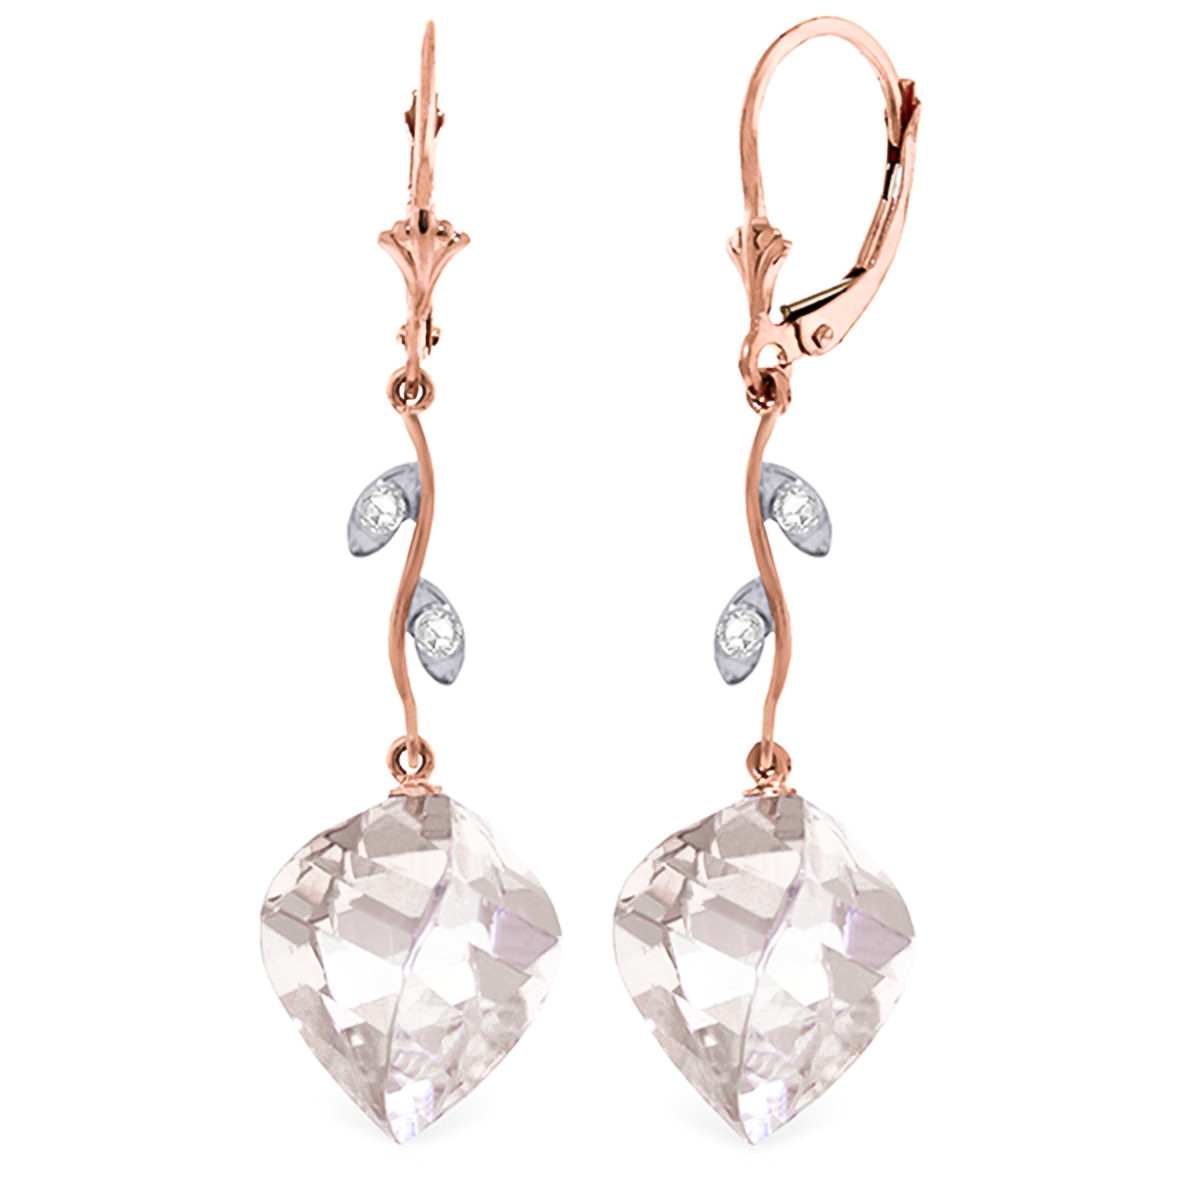 White Topaz Drop Earrings 25.62 ctw in 9ct Rose Gold